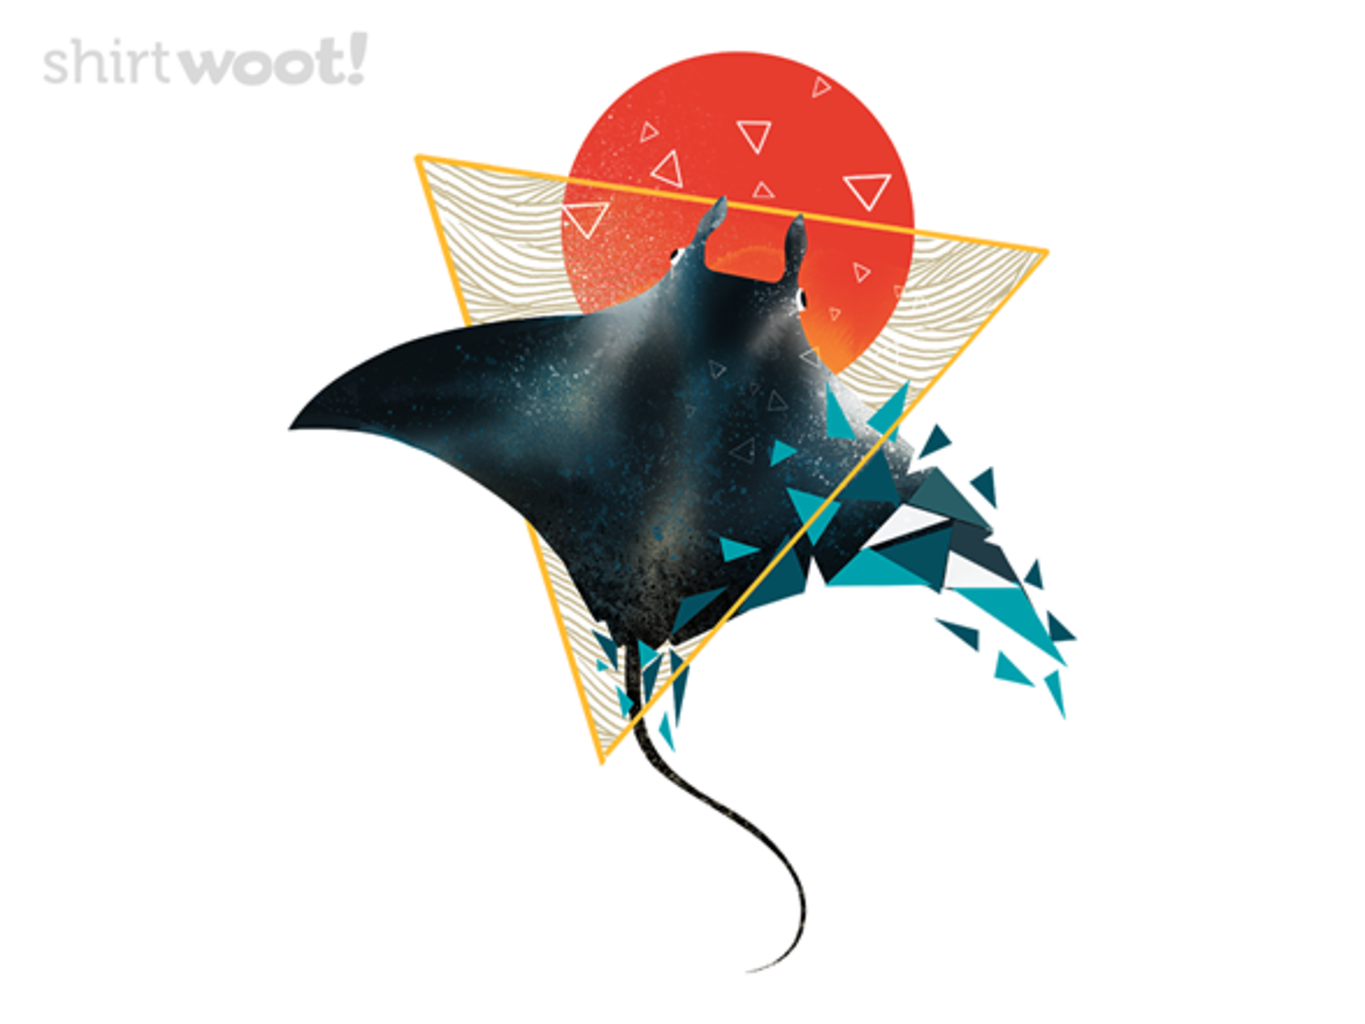 Woot!: Geometric Sting Ray